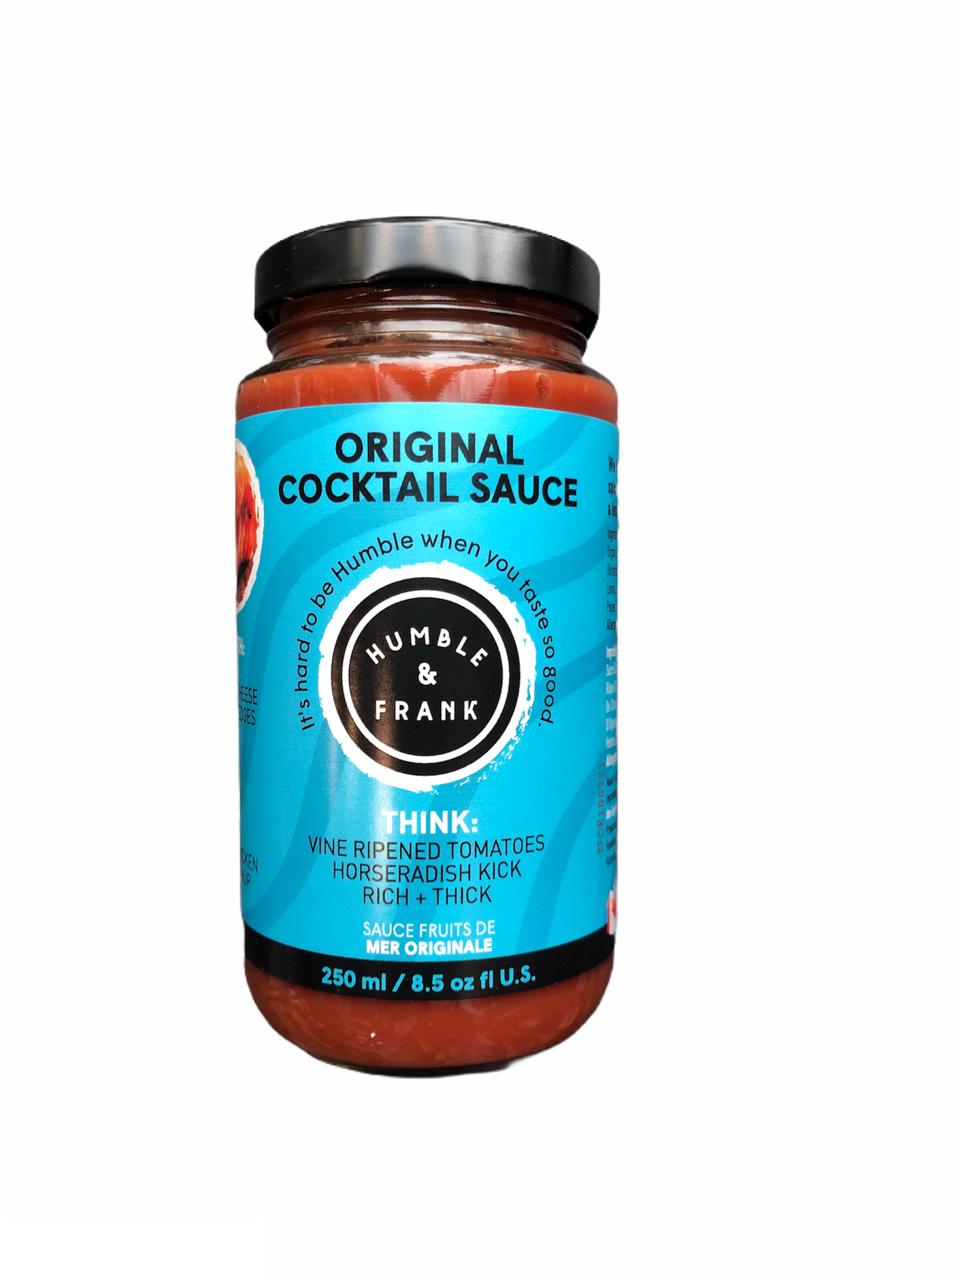 Humble & Frank Original Cocktail Sauce